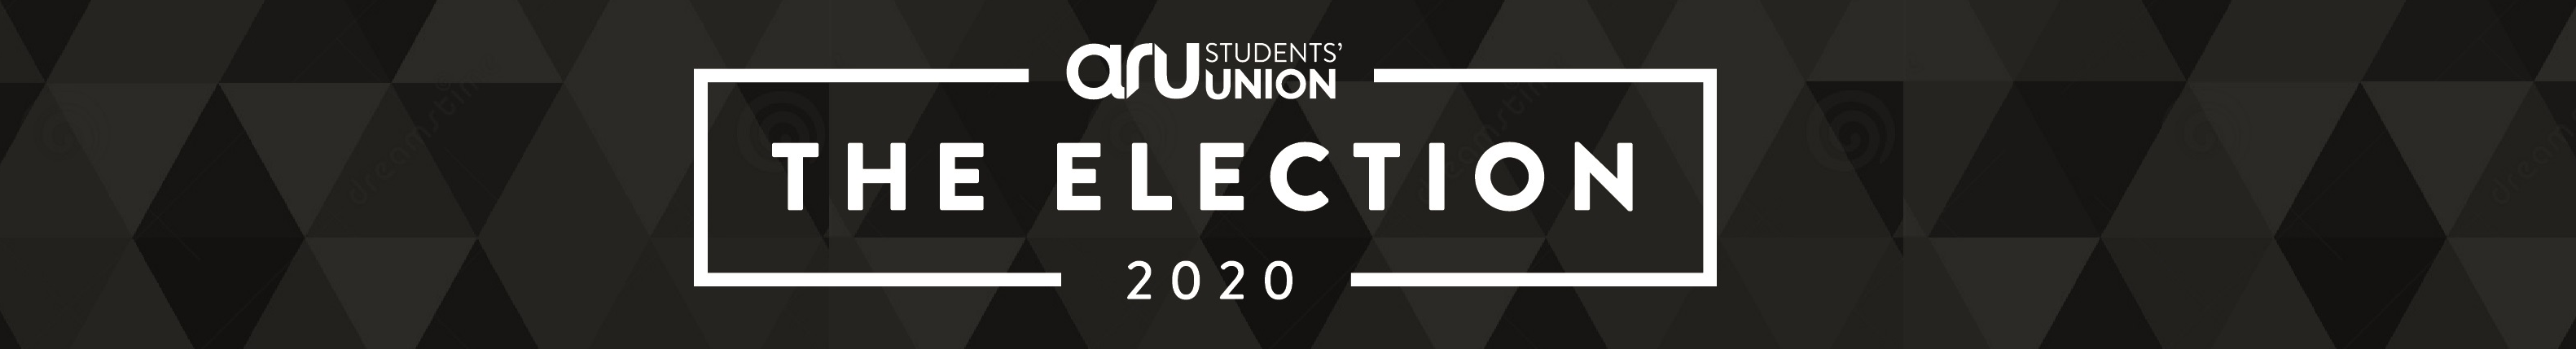 The Election 2020